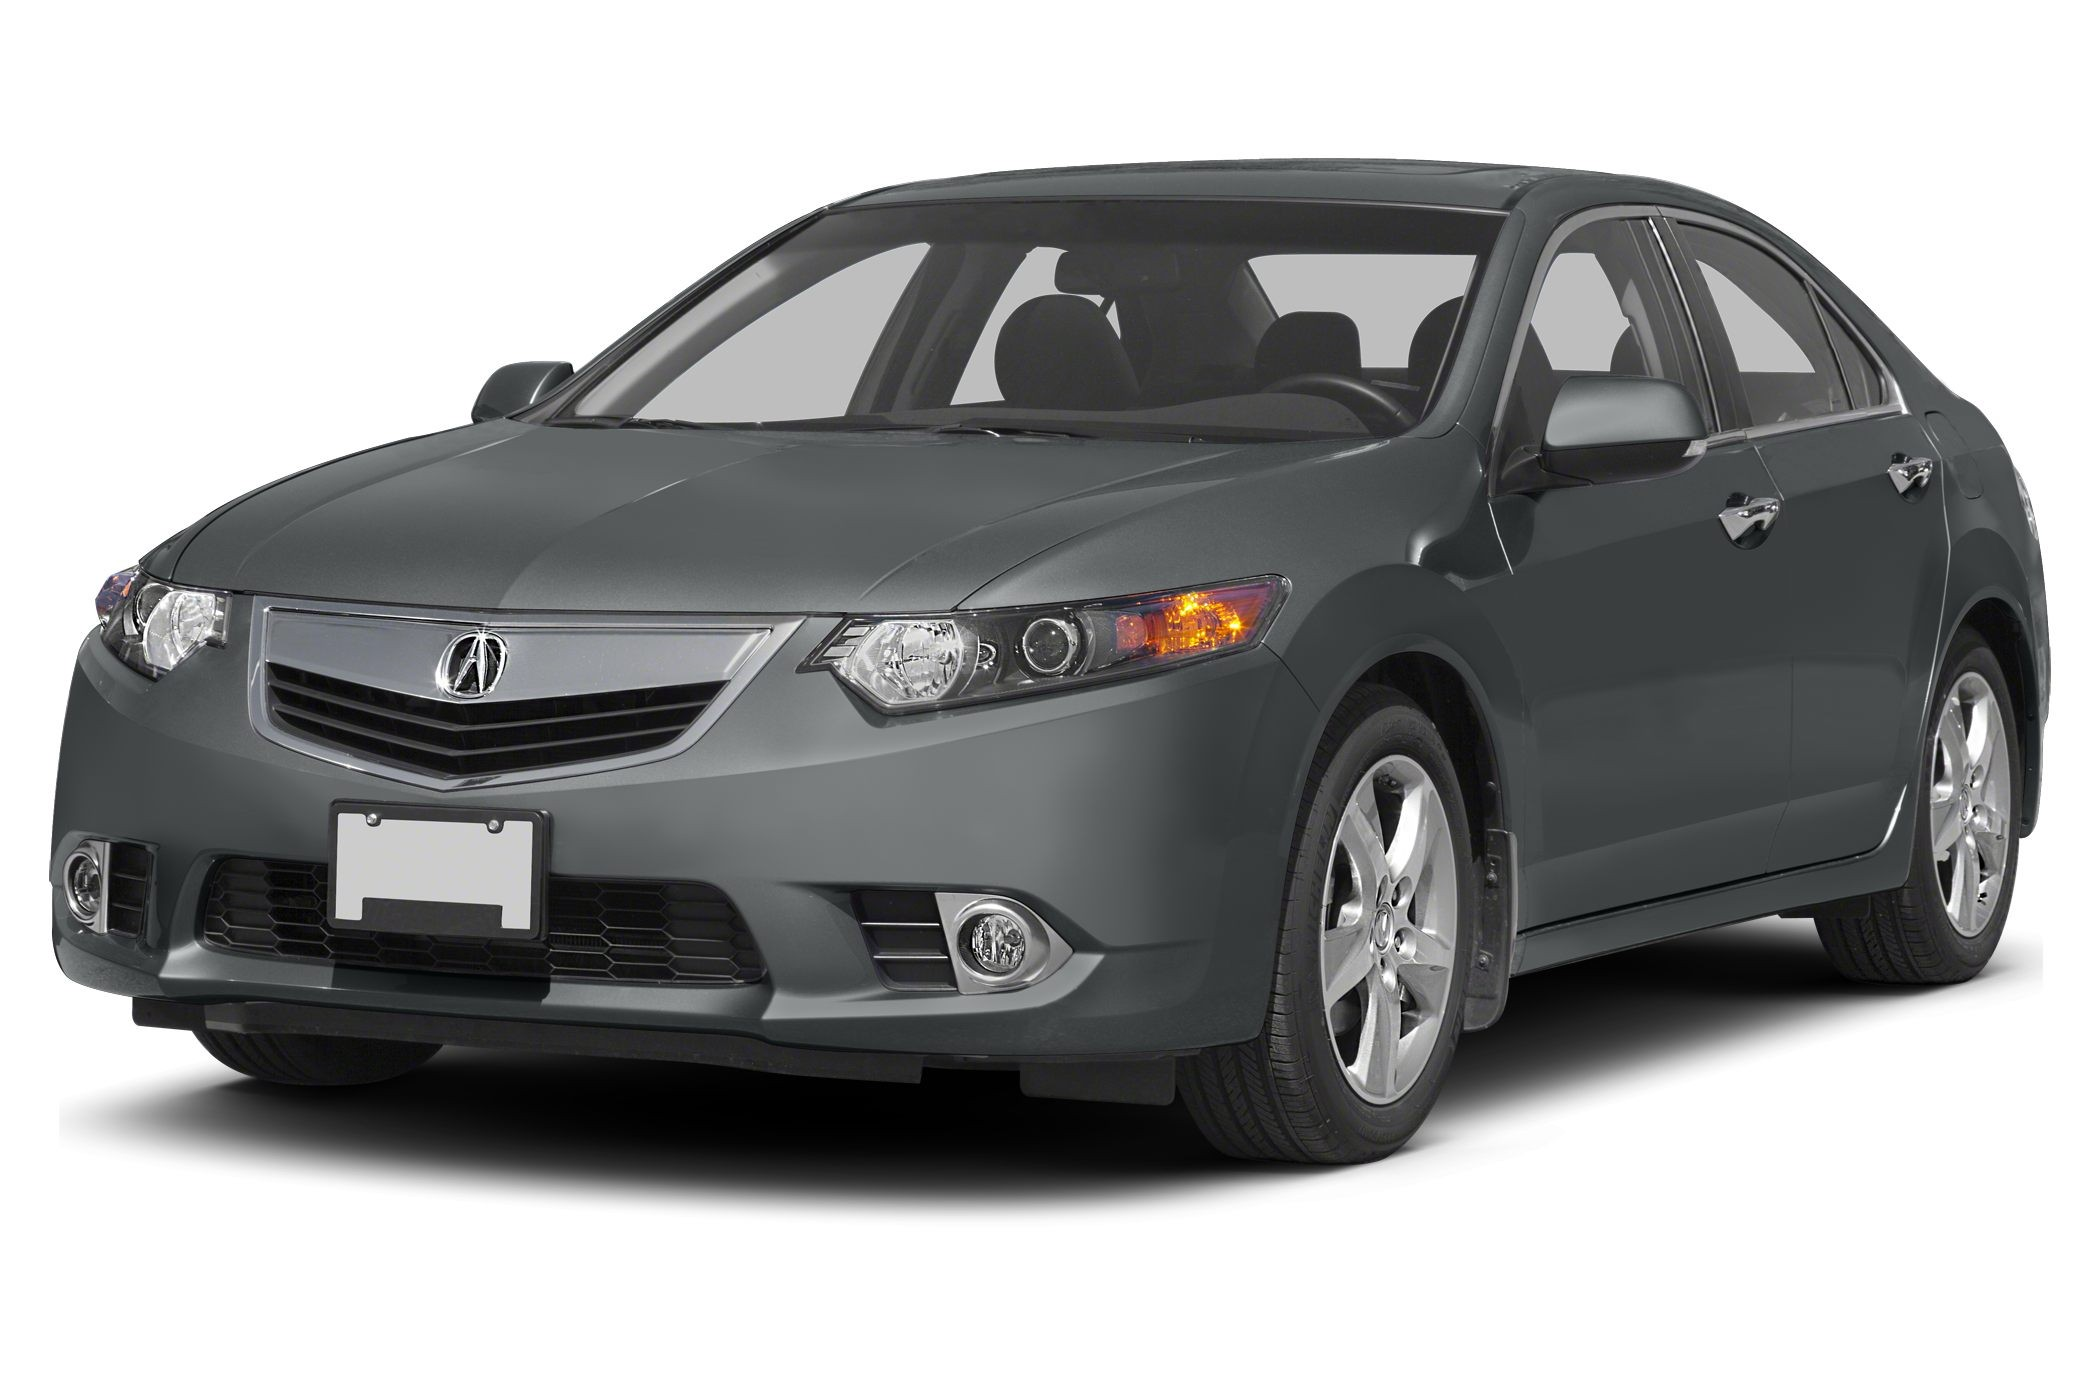 Beautiful 2013 Acura Tsx Review 2013 Acura TSX New Car Test Drive